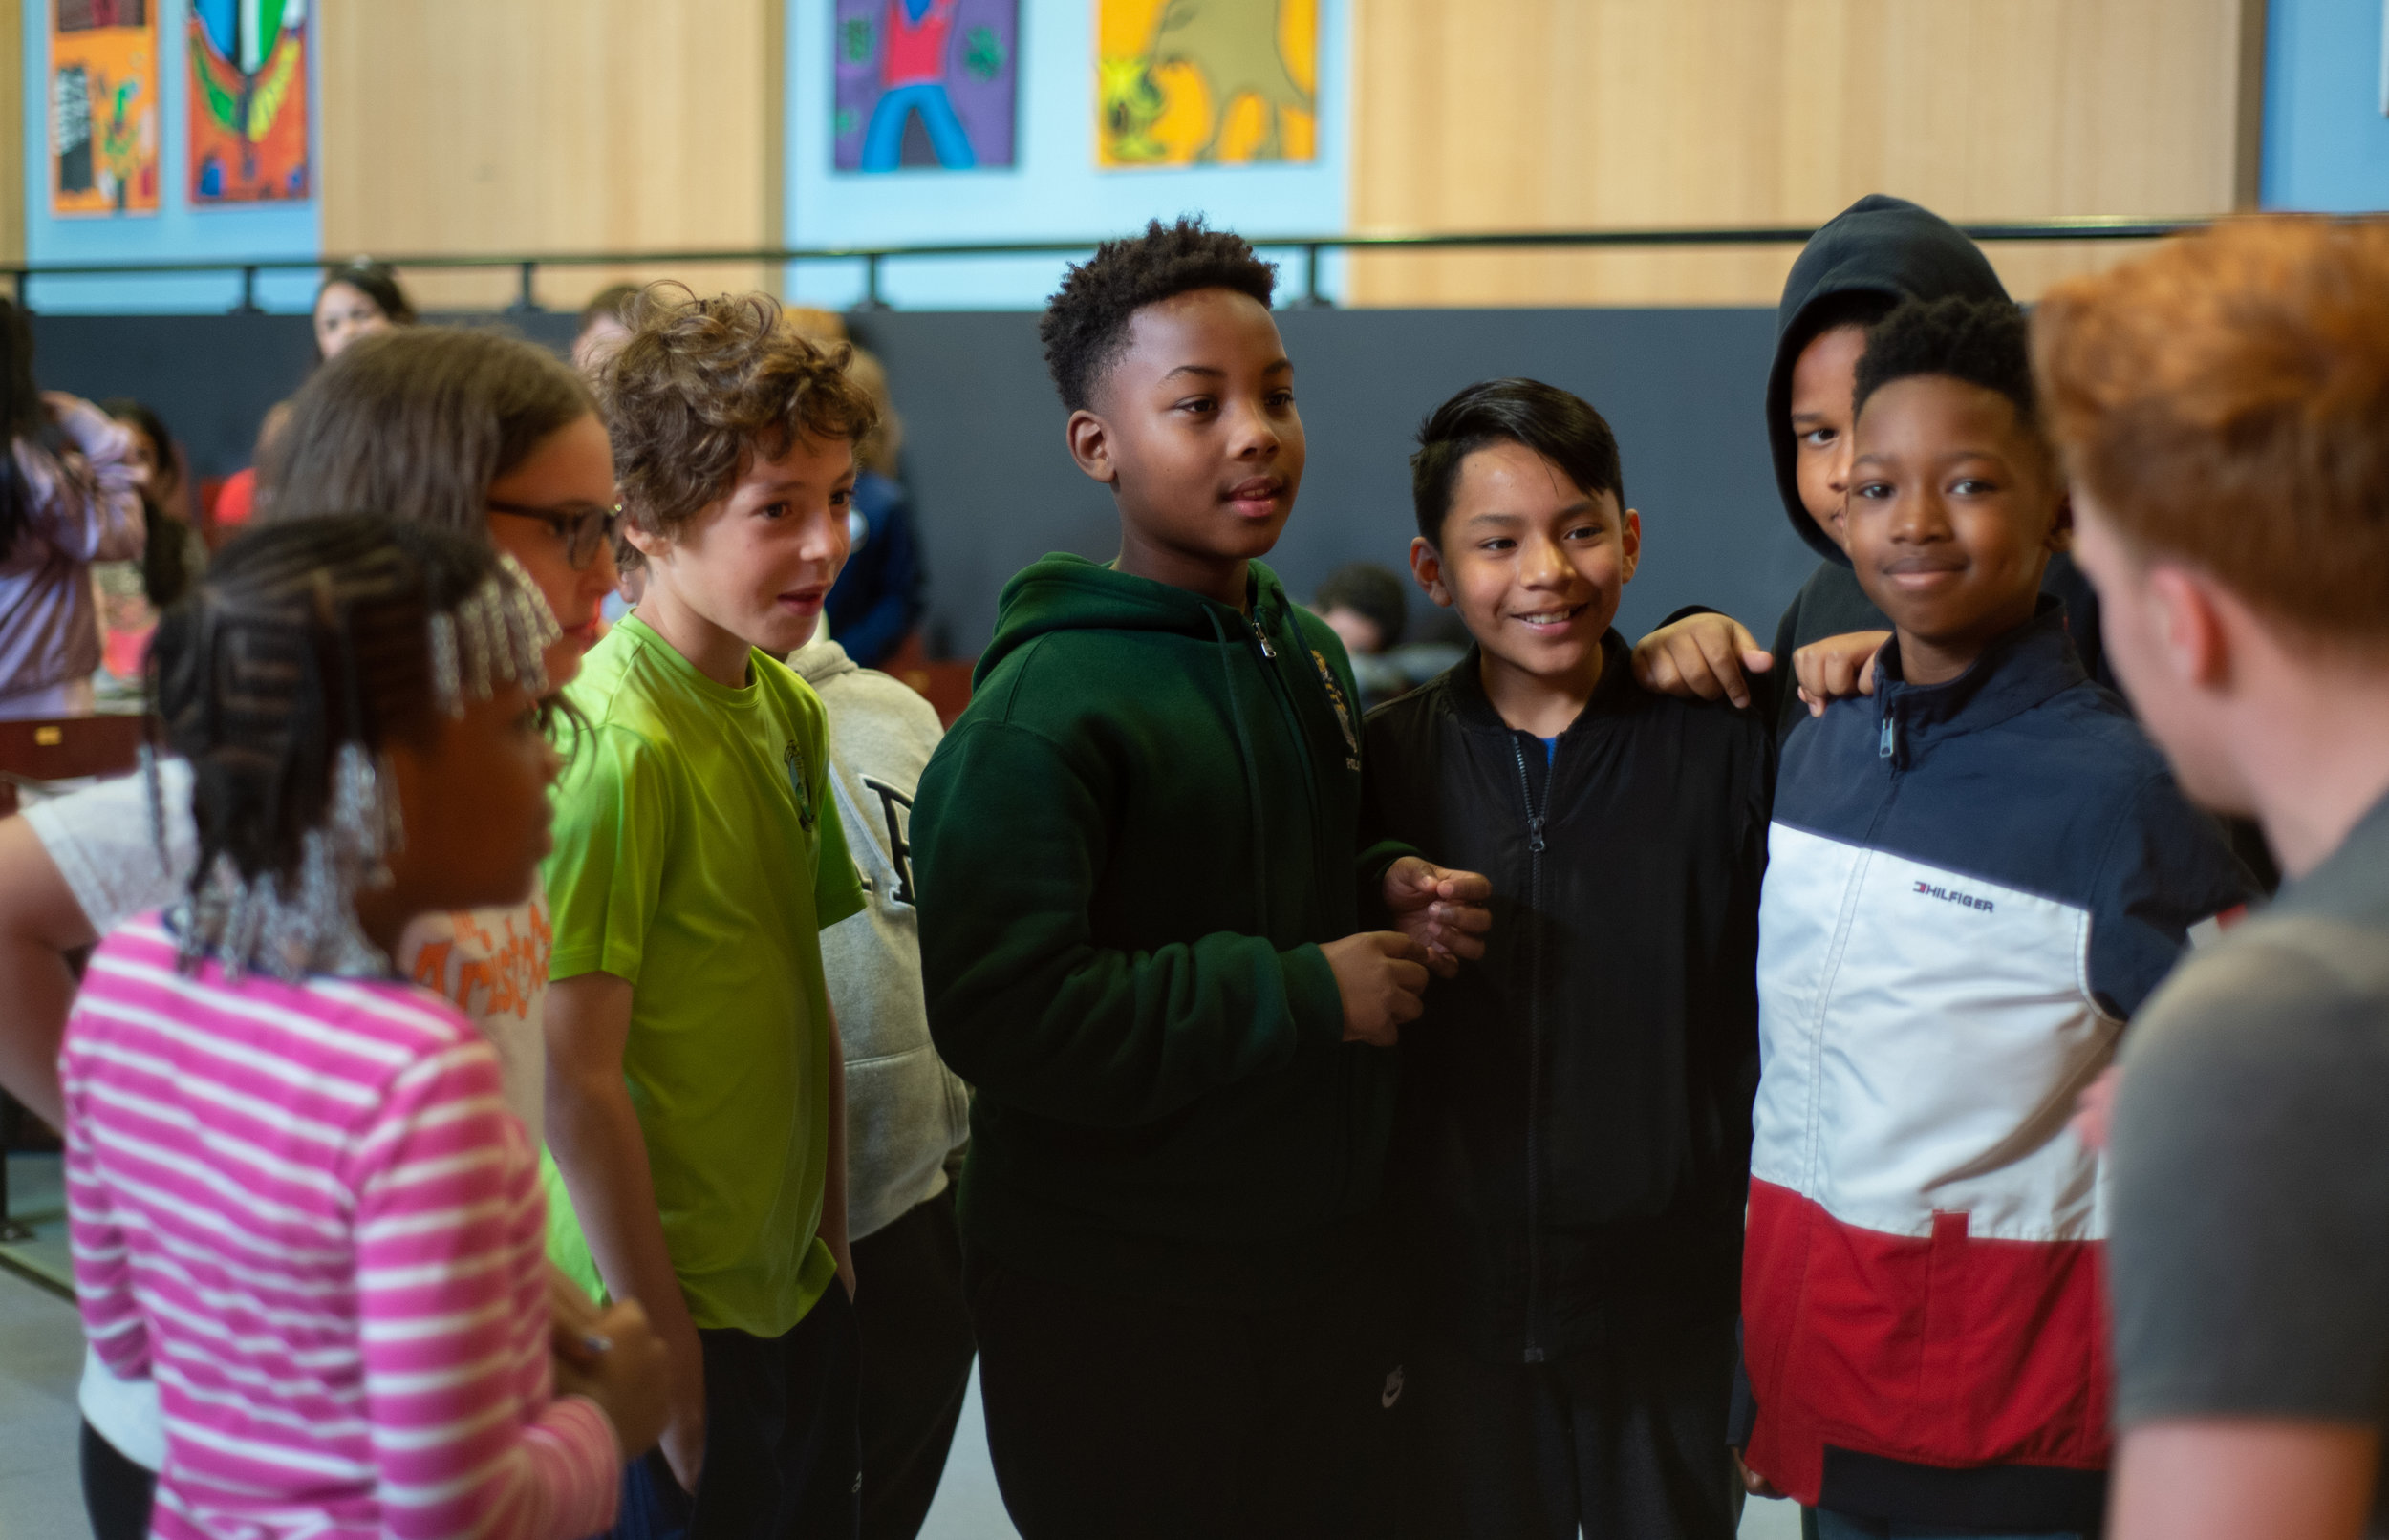 P.S.133 William Butler School, April 16, 2019